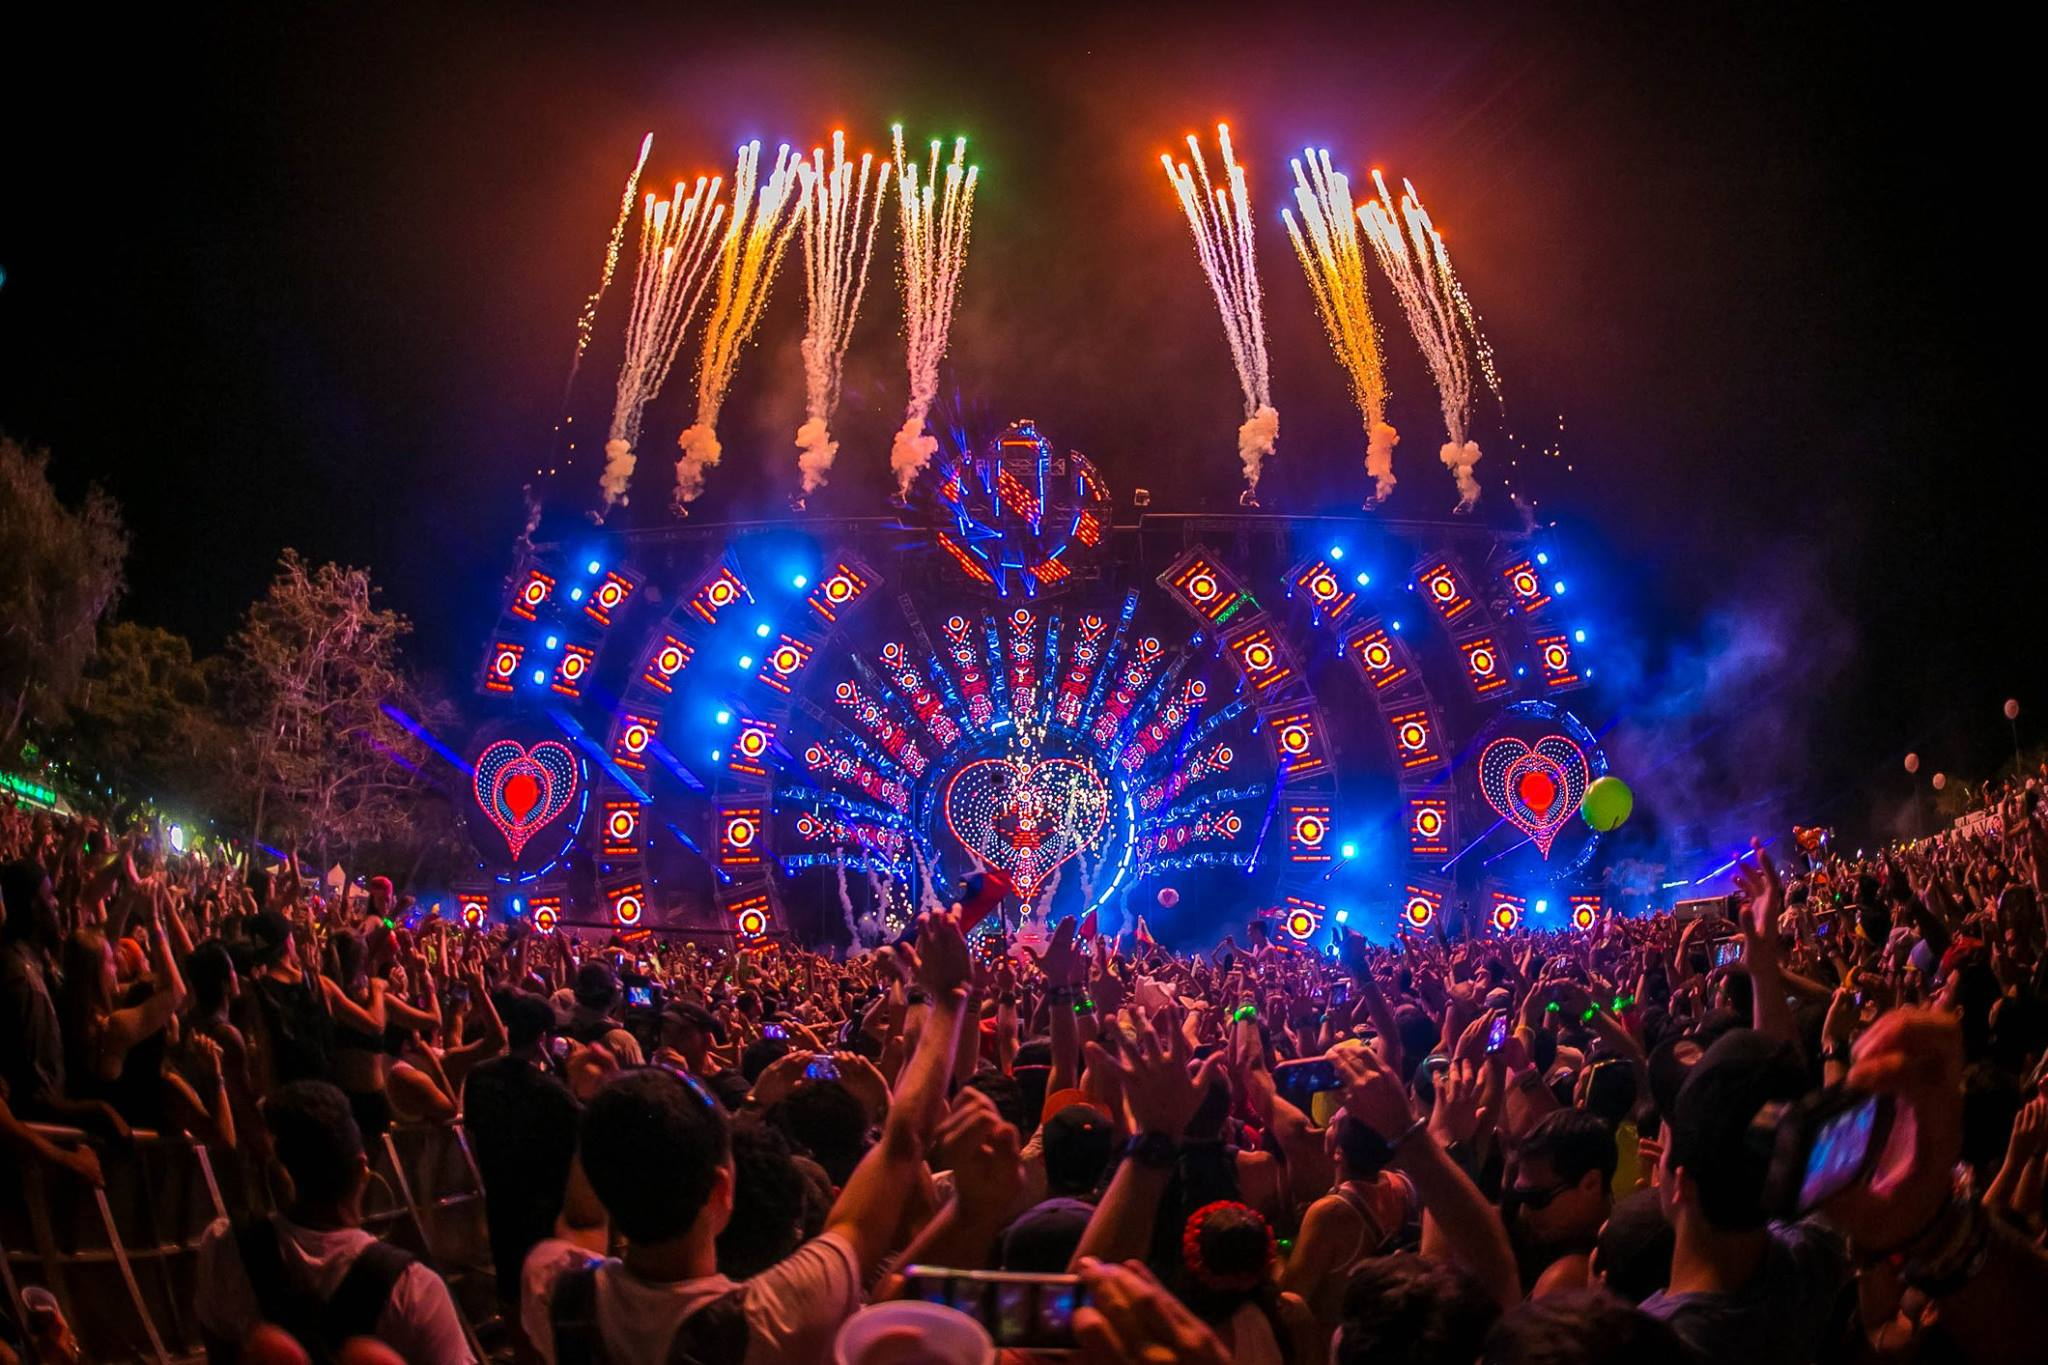 City of Miami Mayor Withdraws Resolution To Get Rid Of Ultra Music Festival